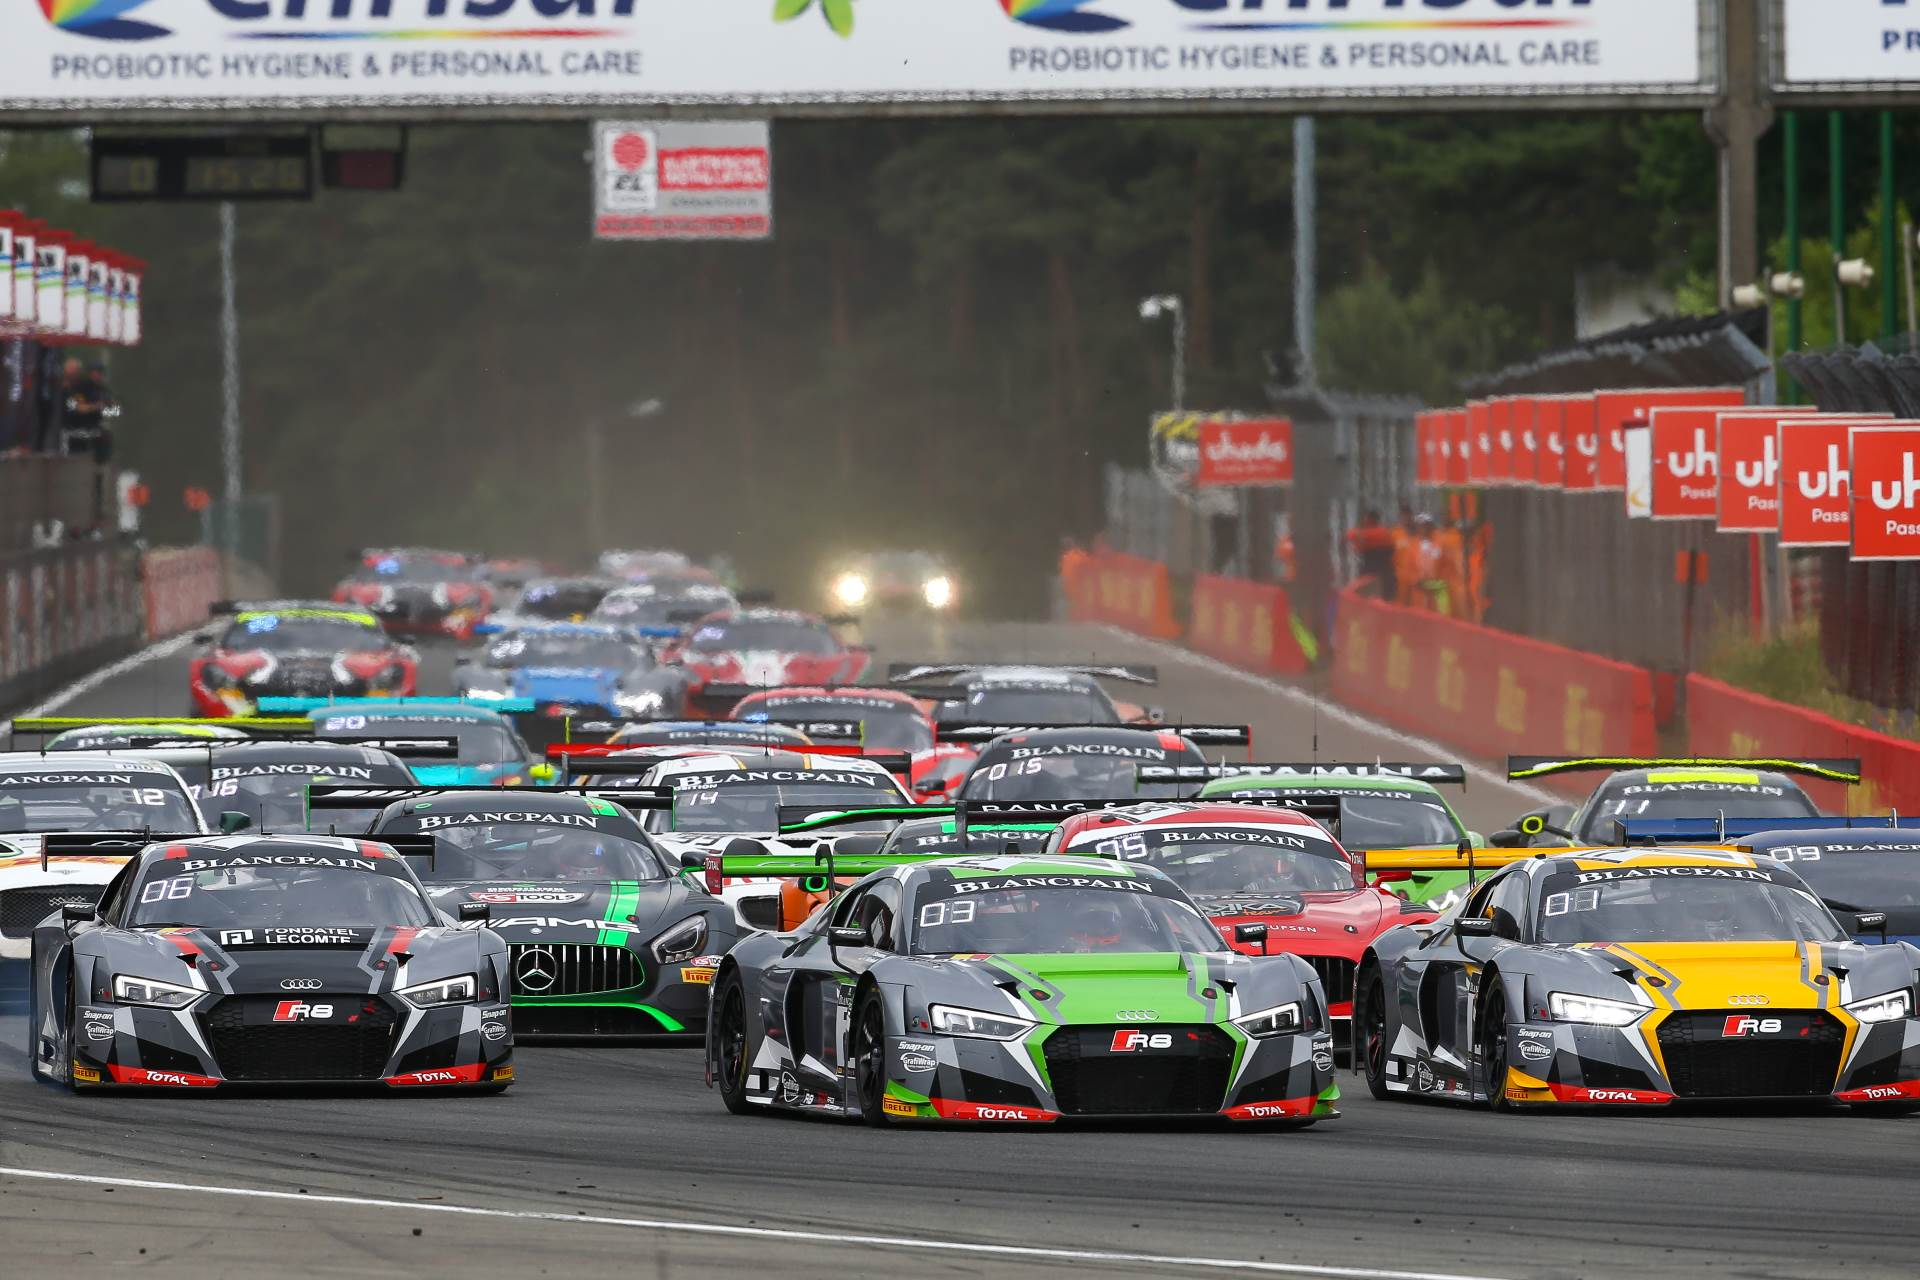 Blancpain gt series kicks off at zolder with sprint cup